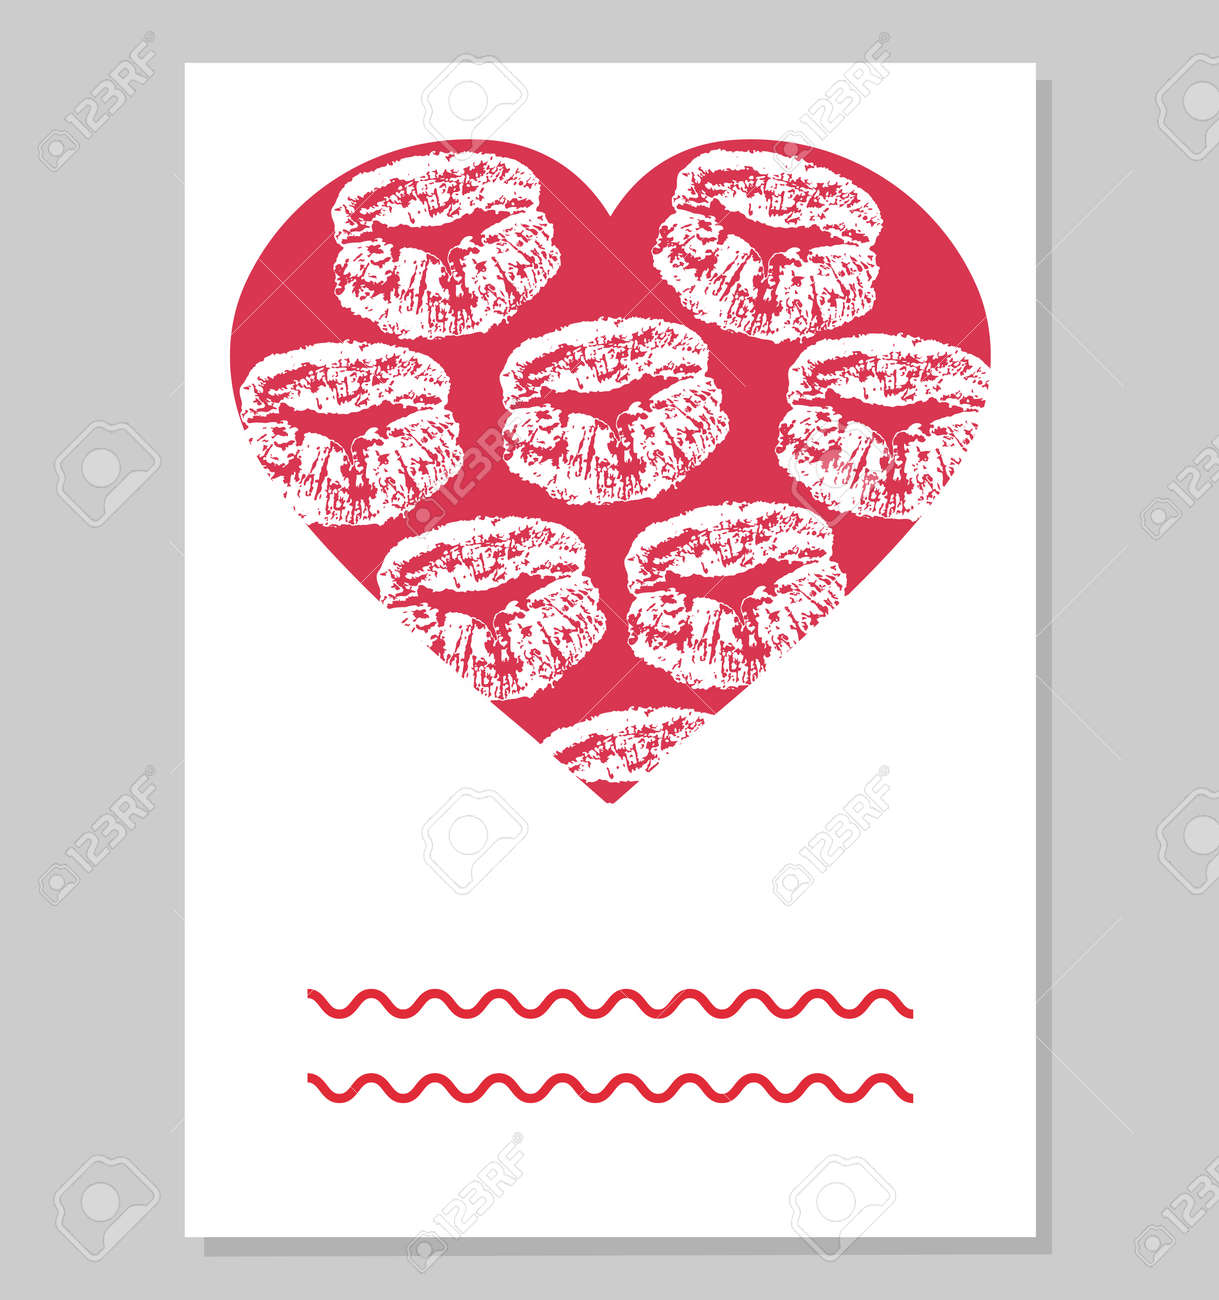 Greeting card or wedding invitation. Mark of female lips in red heart shape. Vector illustration. - 164325345